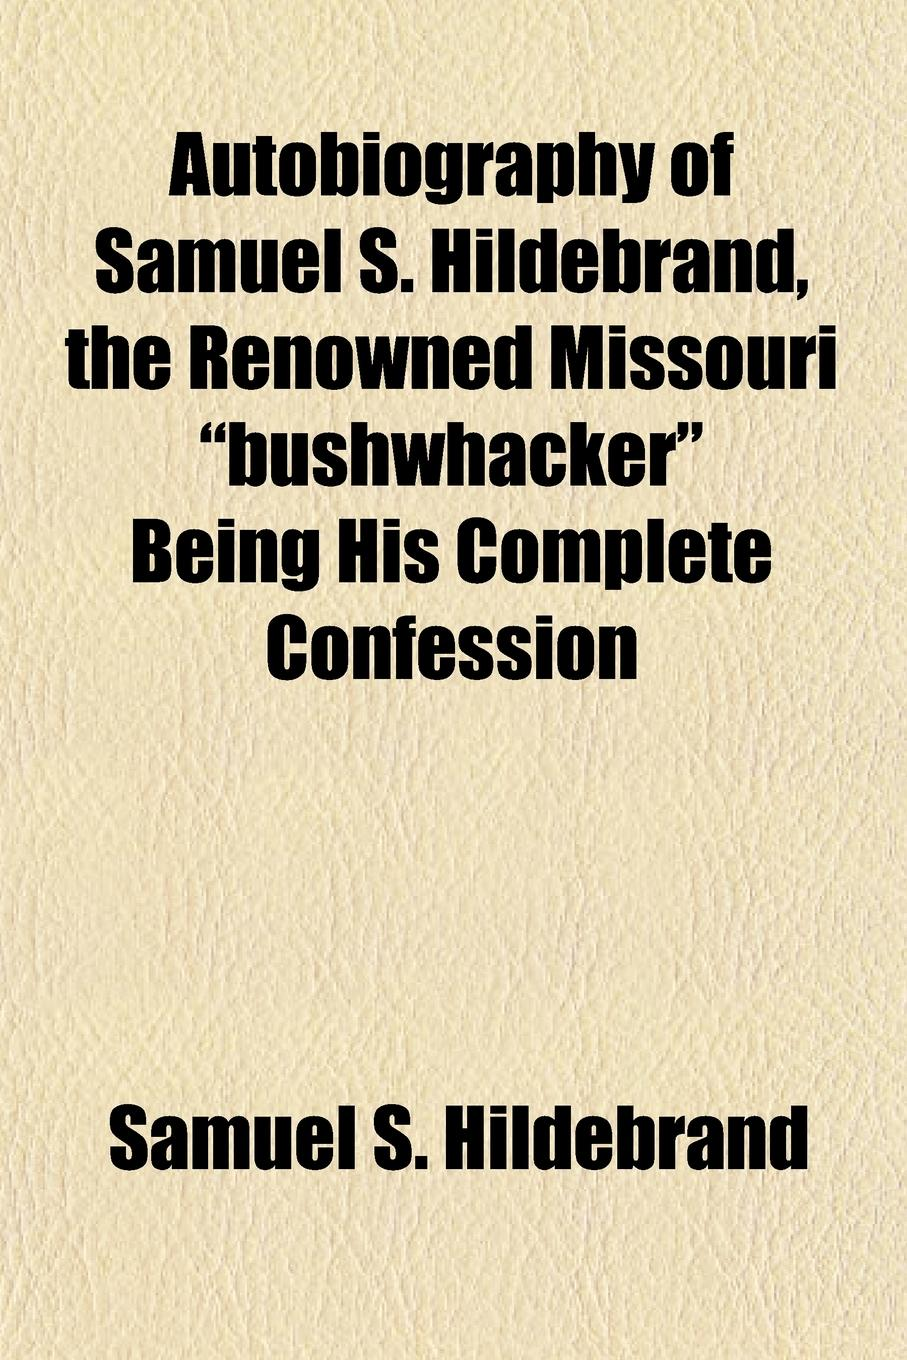 Samuel S. Hildebrand Autobiography of Samuel S. Hildebrand, the Renowned Missouri bushwhacker Being His Complete Confession free shipping kayipht cm400ha1 24h can directly buy or contact the seller